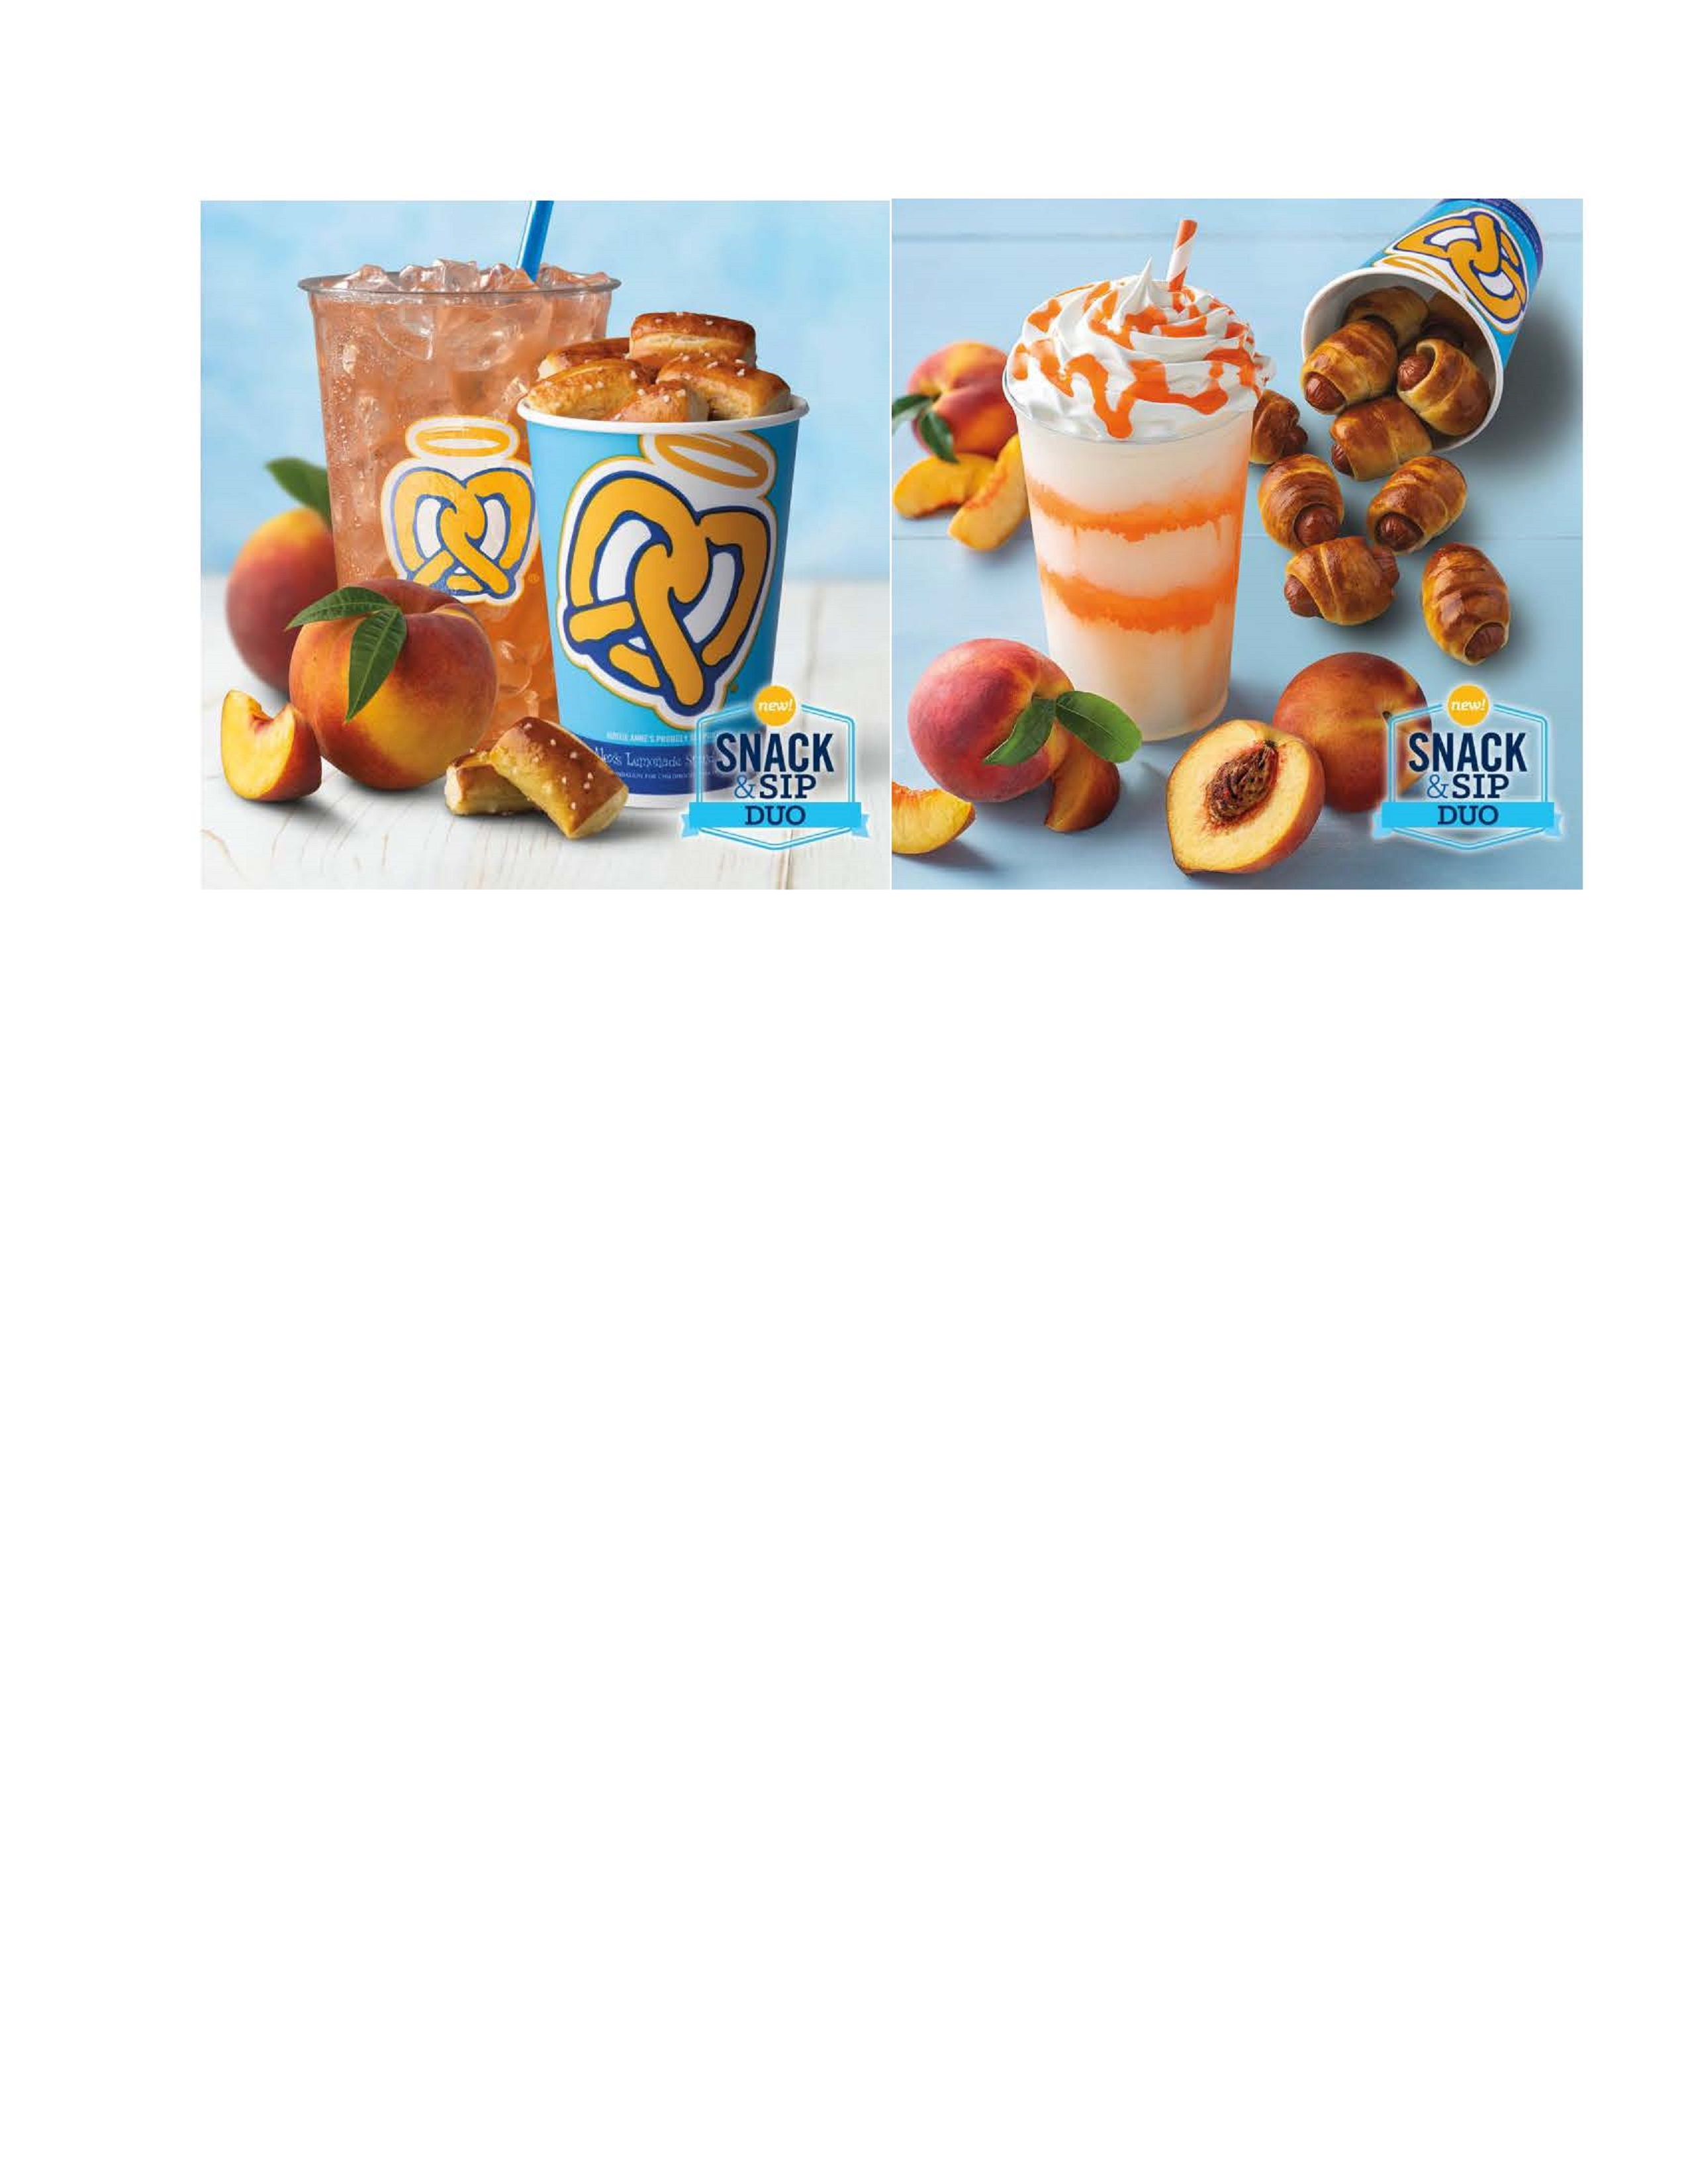 Snack and Sip Duo from Auntie Anne's